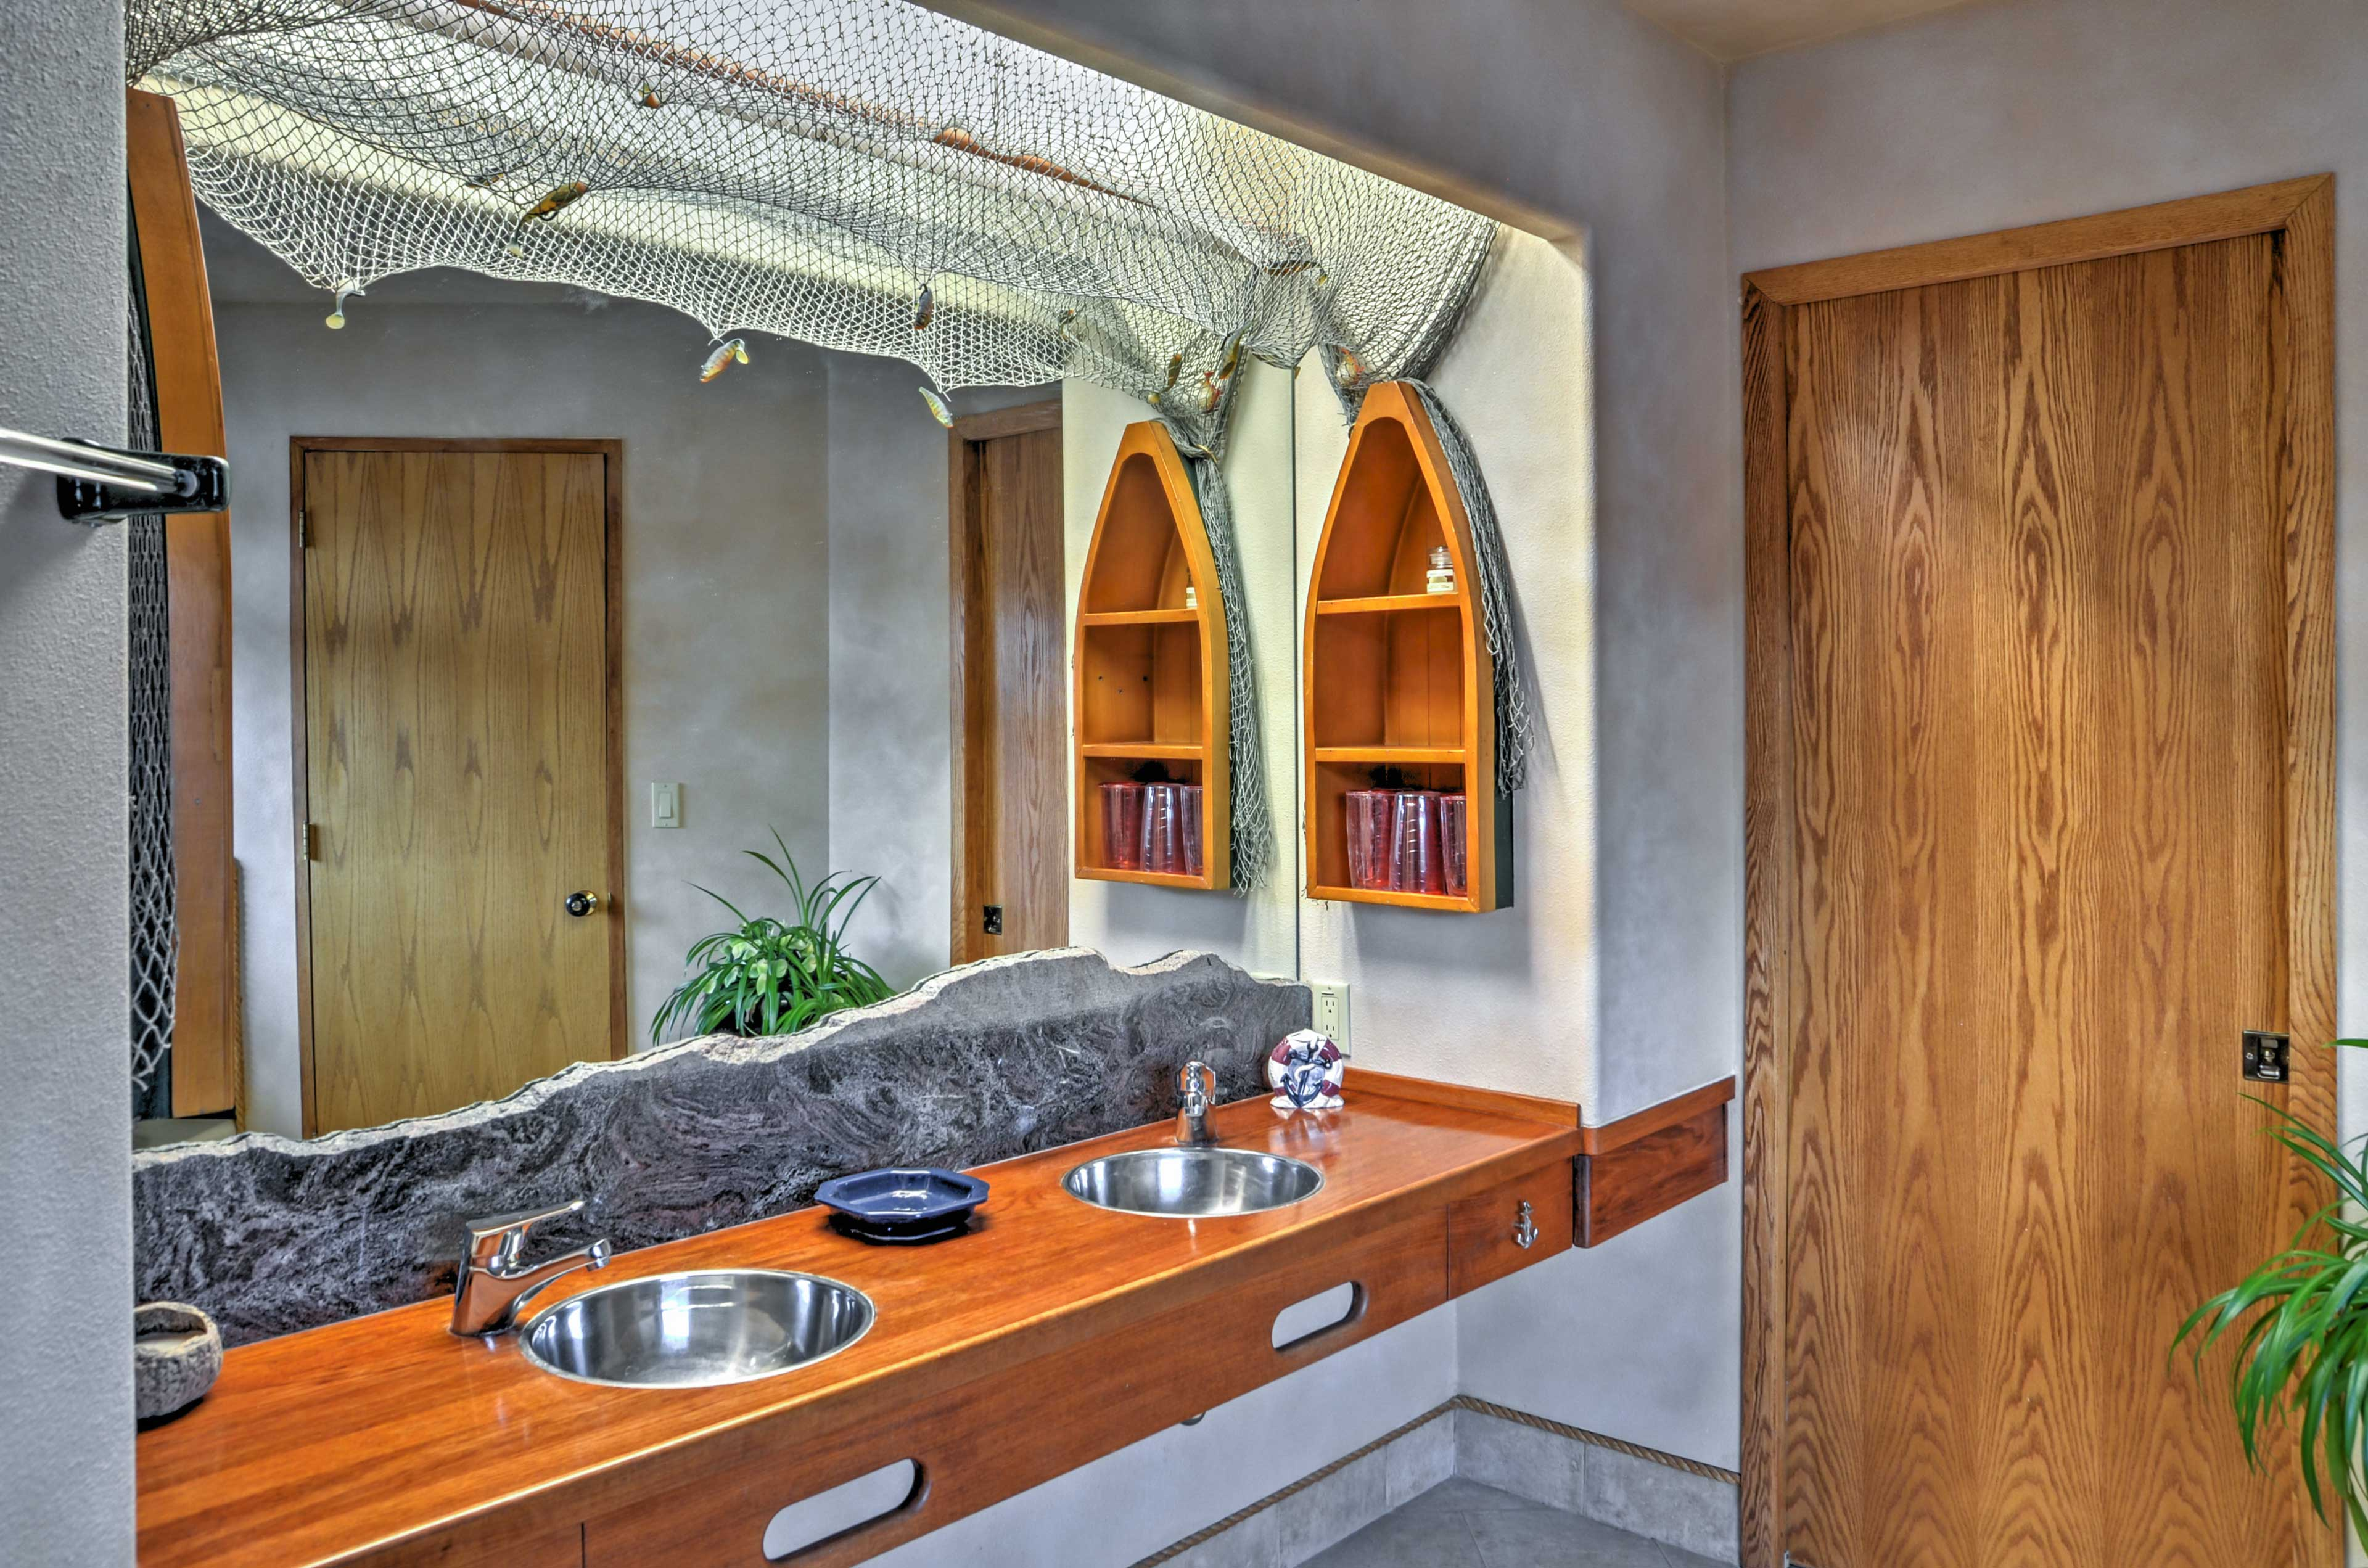 Get read for the day in this lake-themed bathroom with double vanities.